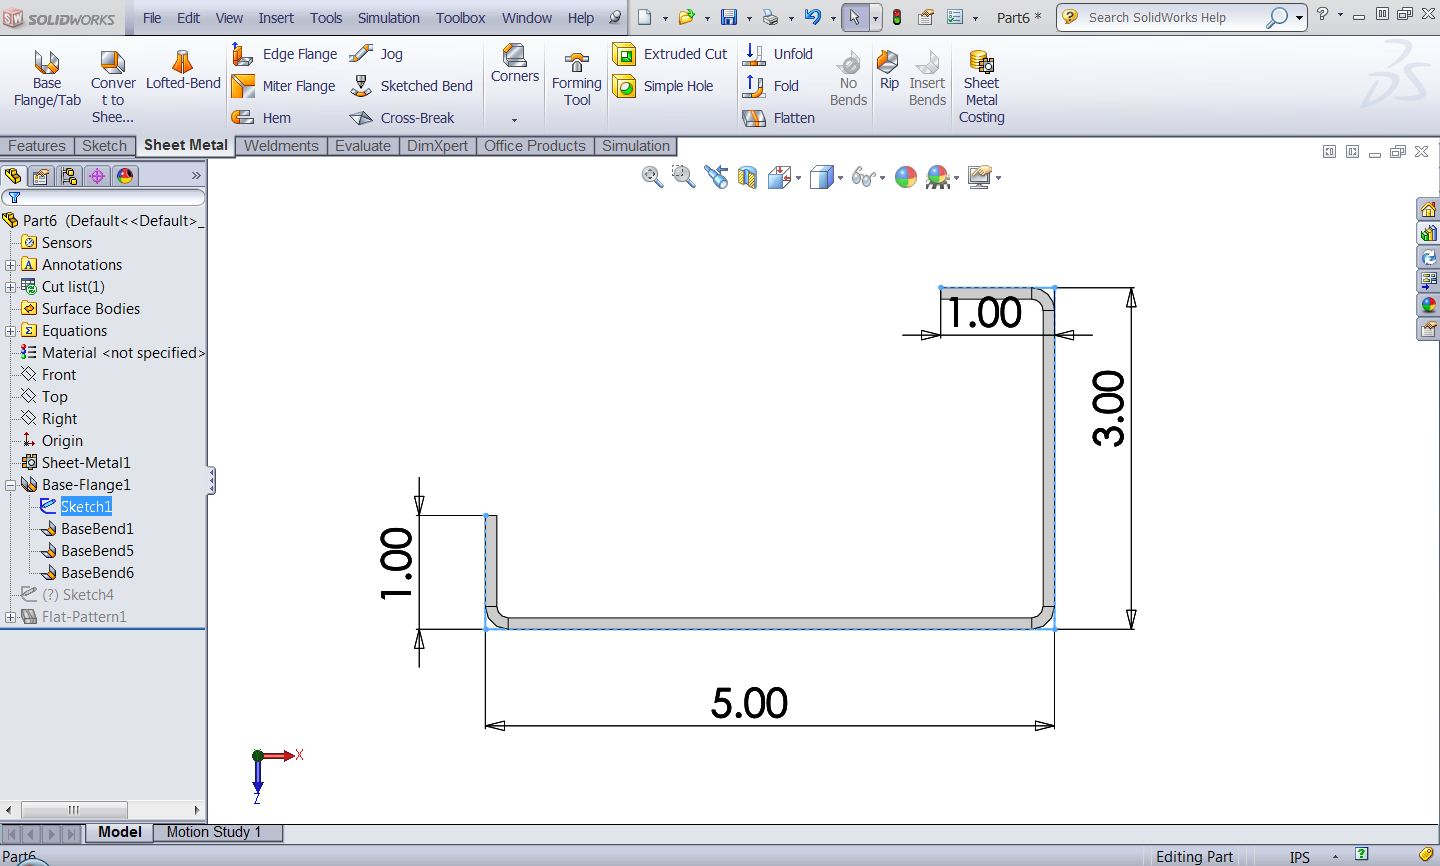 Sheet Metal Bend Deduction Calculations With Switching